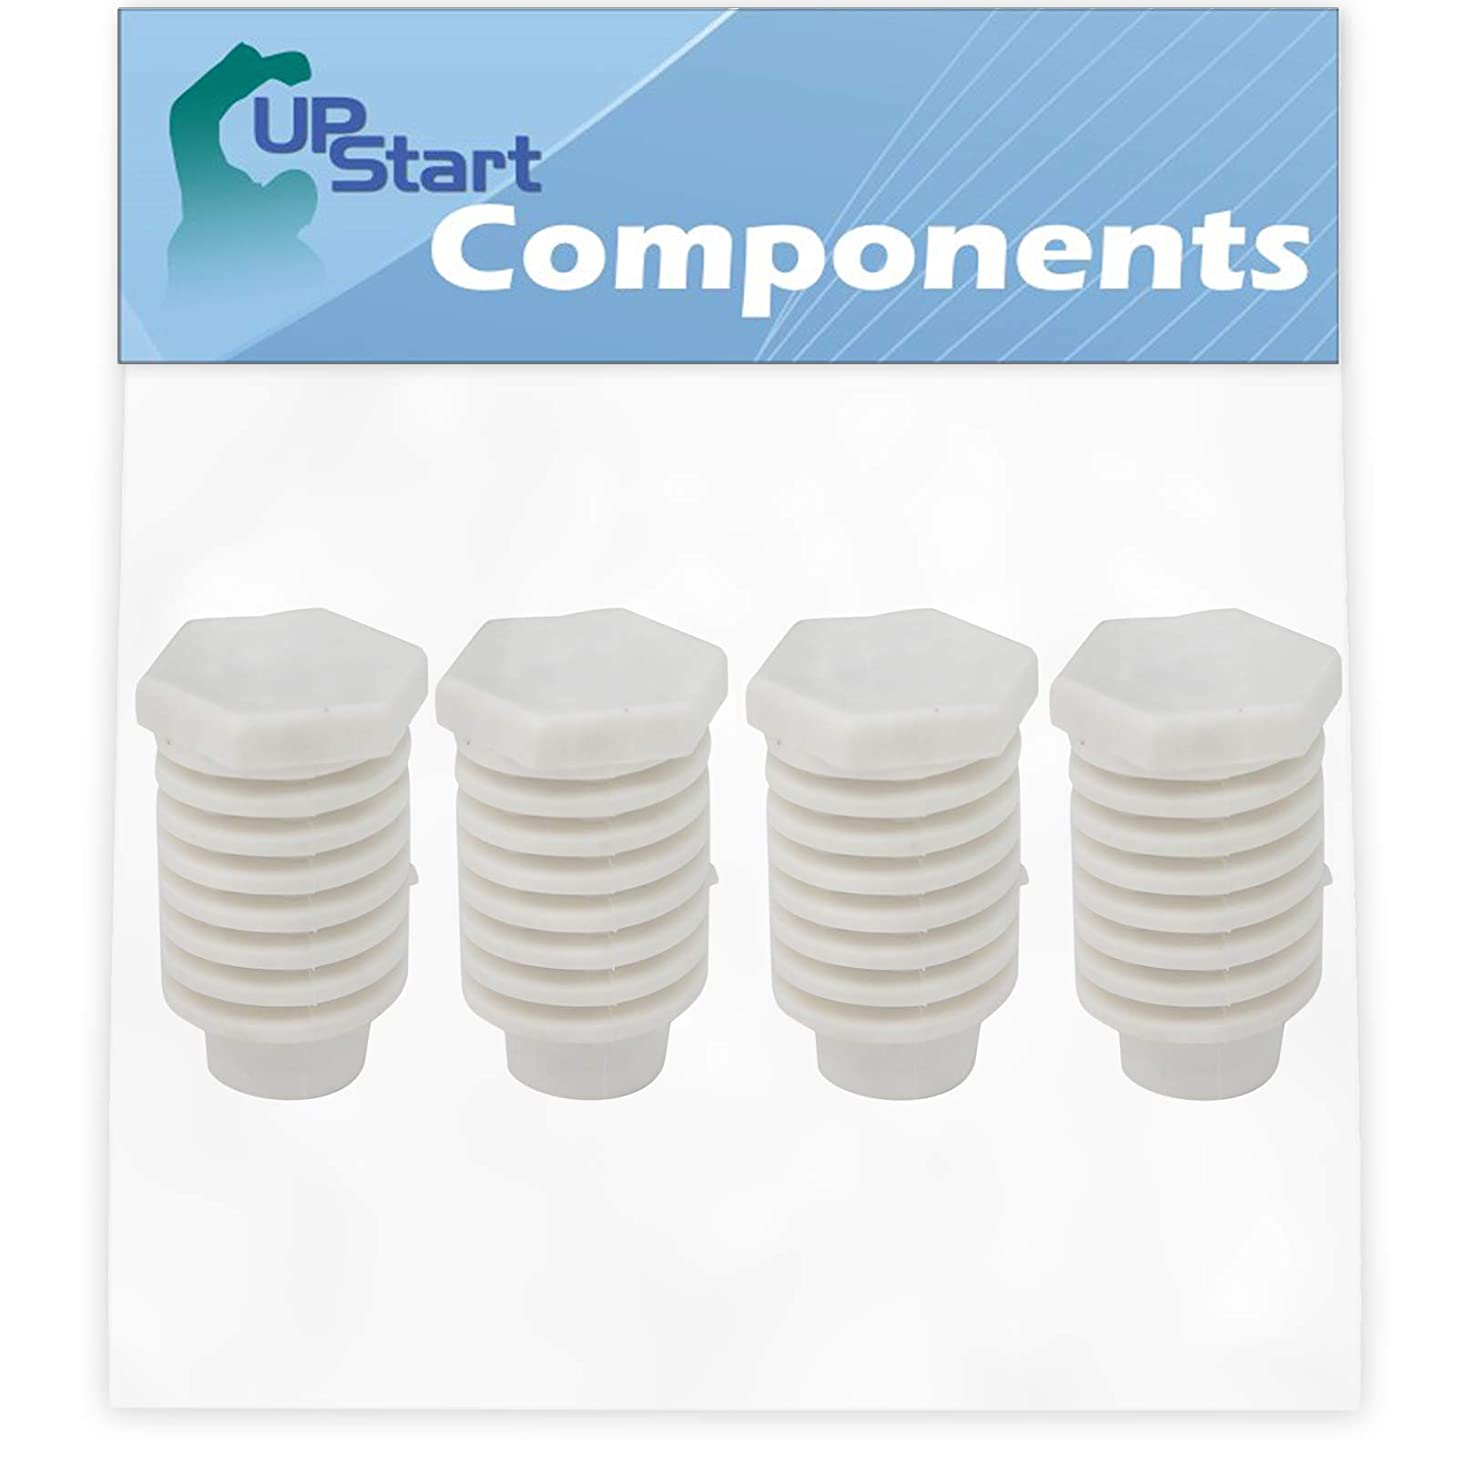 4-Pack 49621 Leveling Foot Replacement for Whirlpool LGR5624BW1 Dryer - Compatible with 49621 Dryer Leveling Leg Foot - UpStart Components Brand